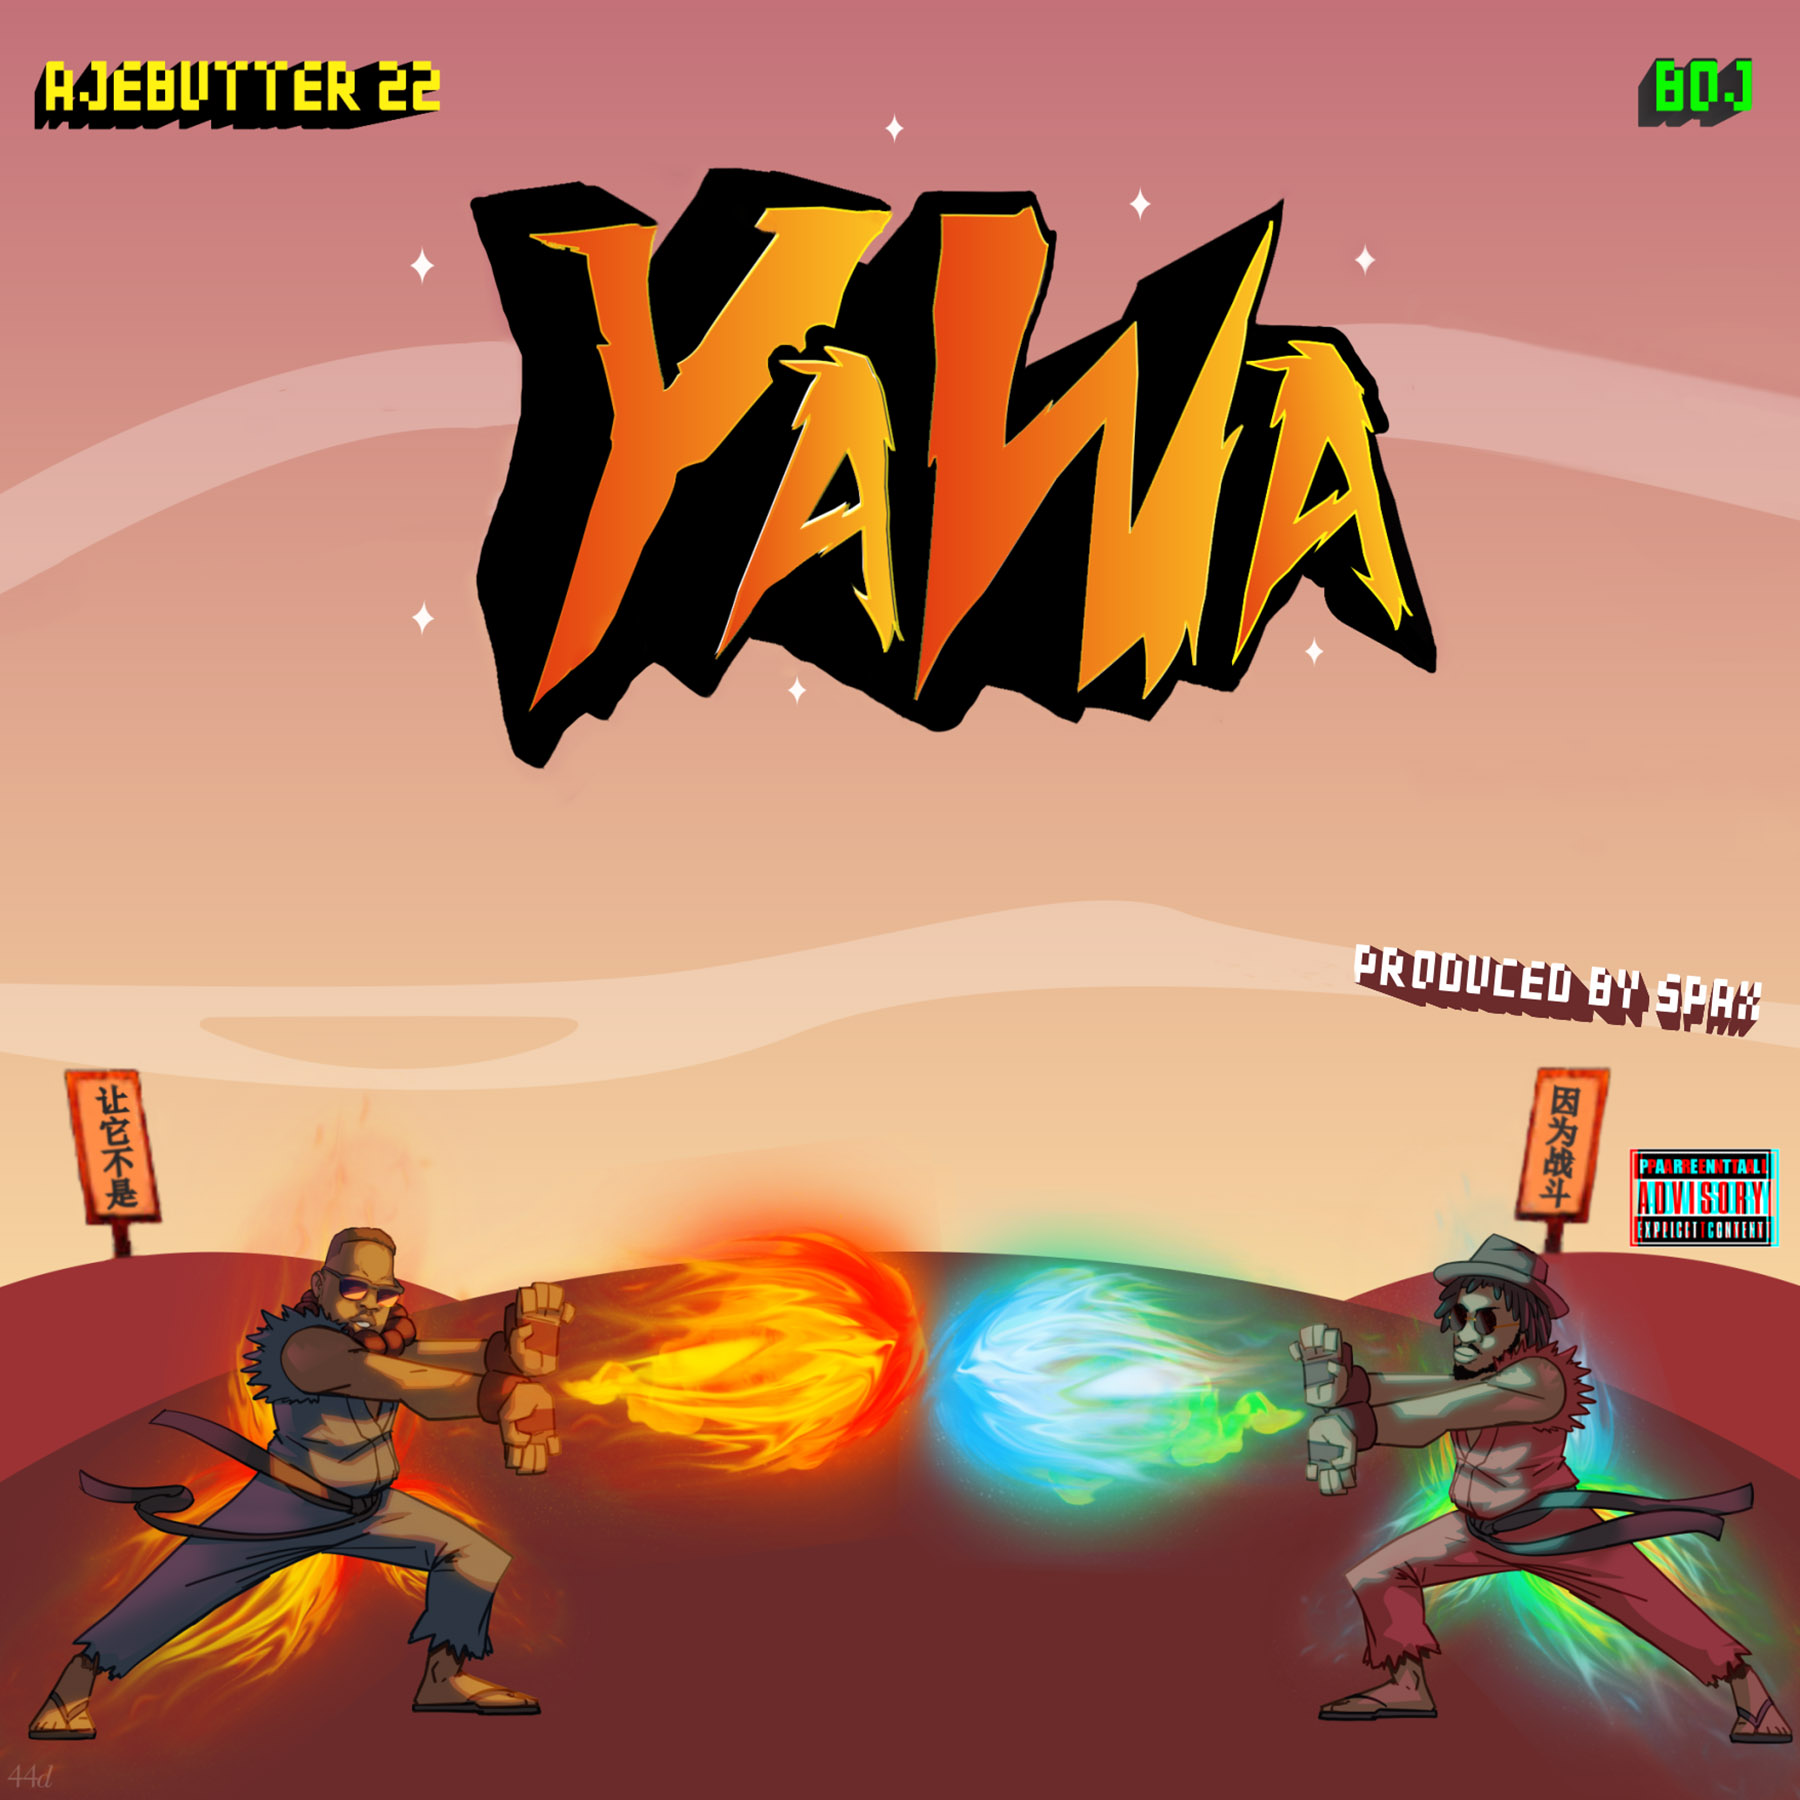 VIDEO: Ajebutter 22 x BOJ – Yawa (Viral + Lyric)